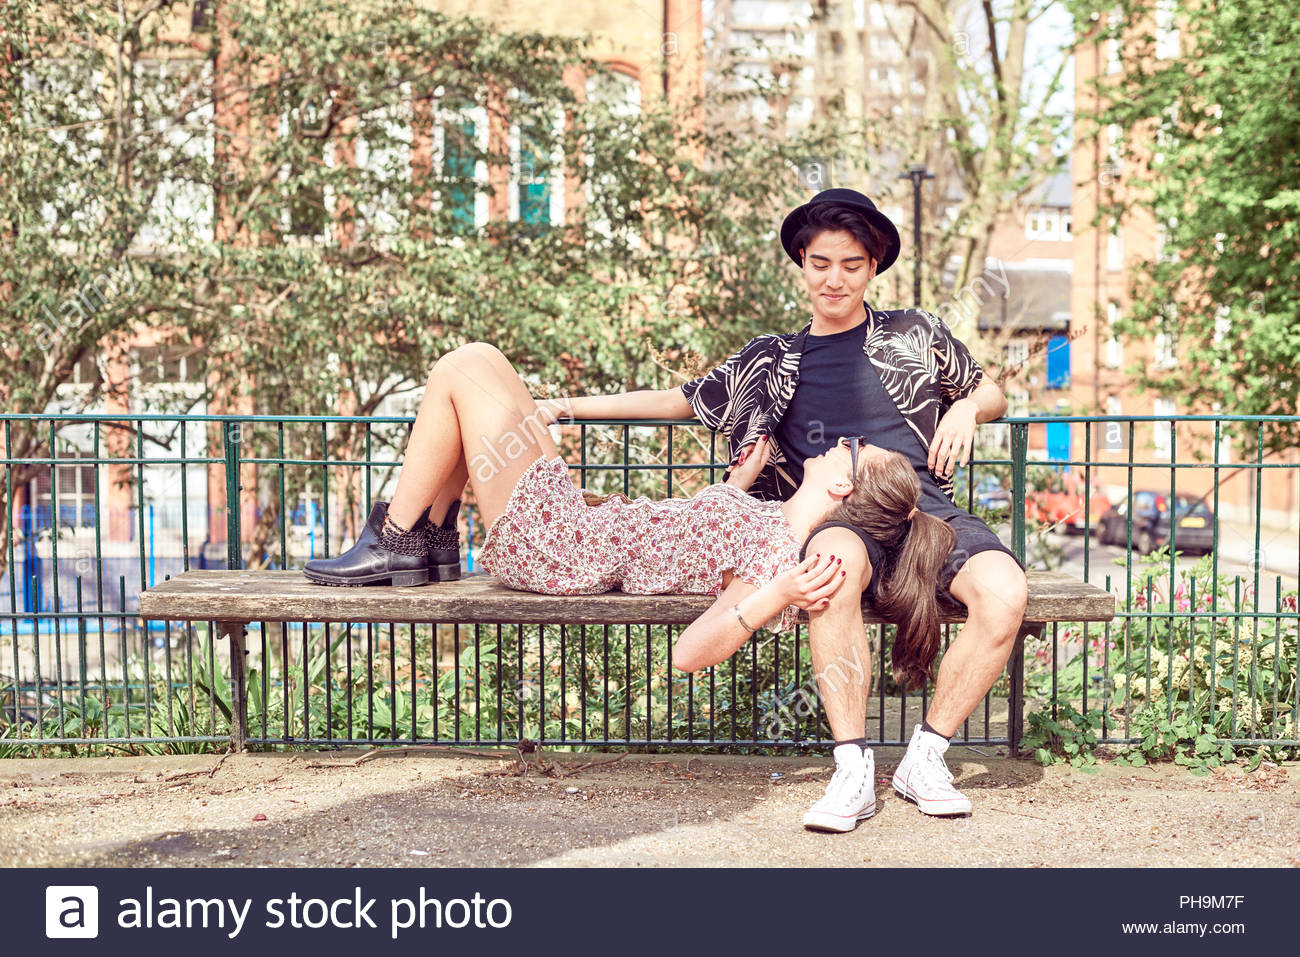 Teenage girl lying in boyfriend's lap at park - Stock Image